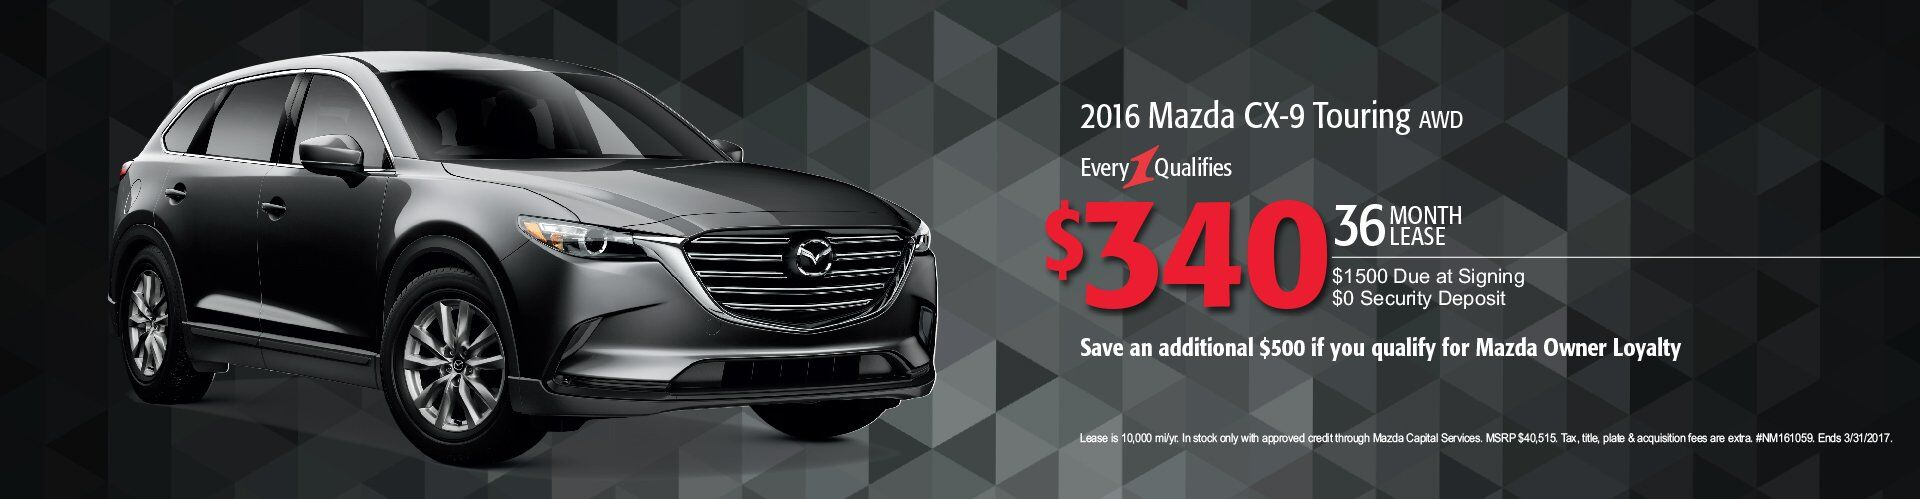 2016 Mazda CX-9 Touring Lease Pittsburgh PA